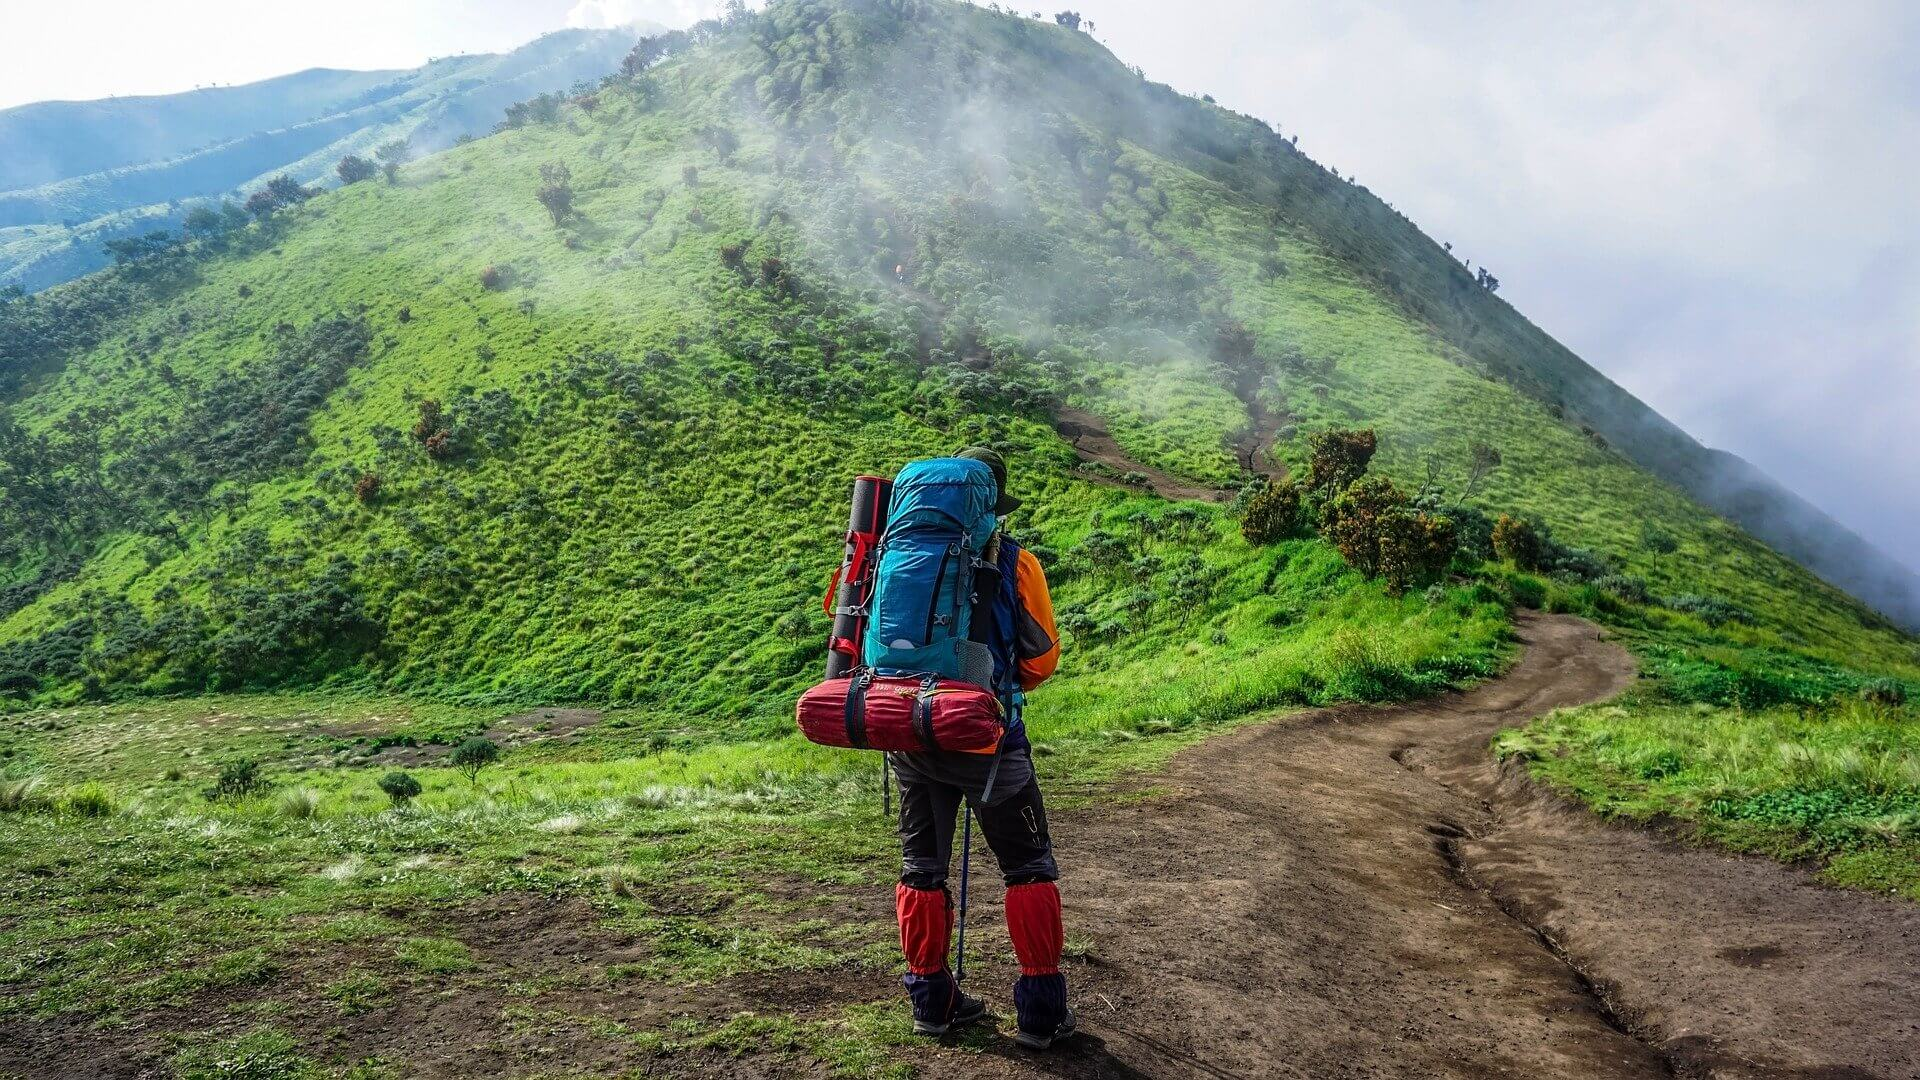 Backpacker on a trail in front of a green mountain.